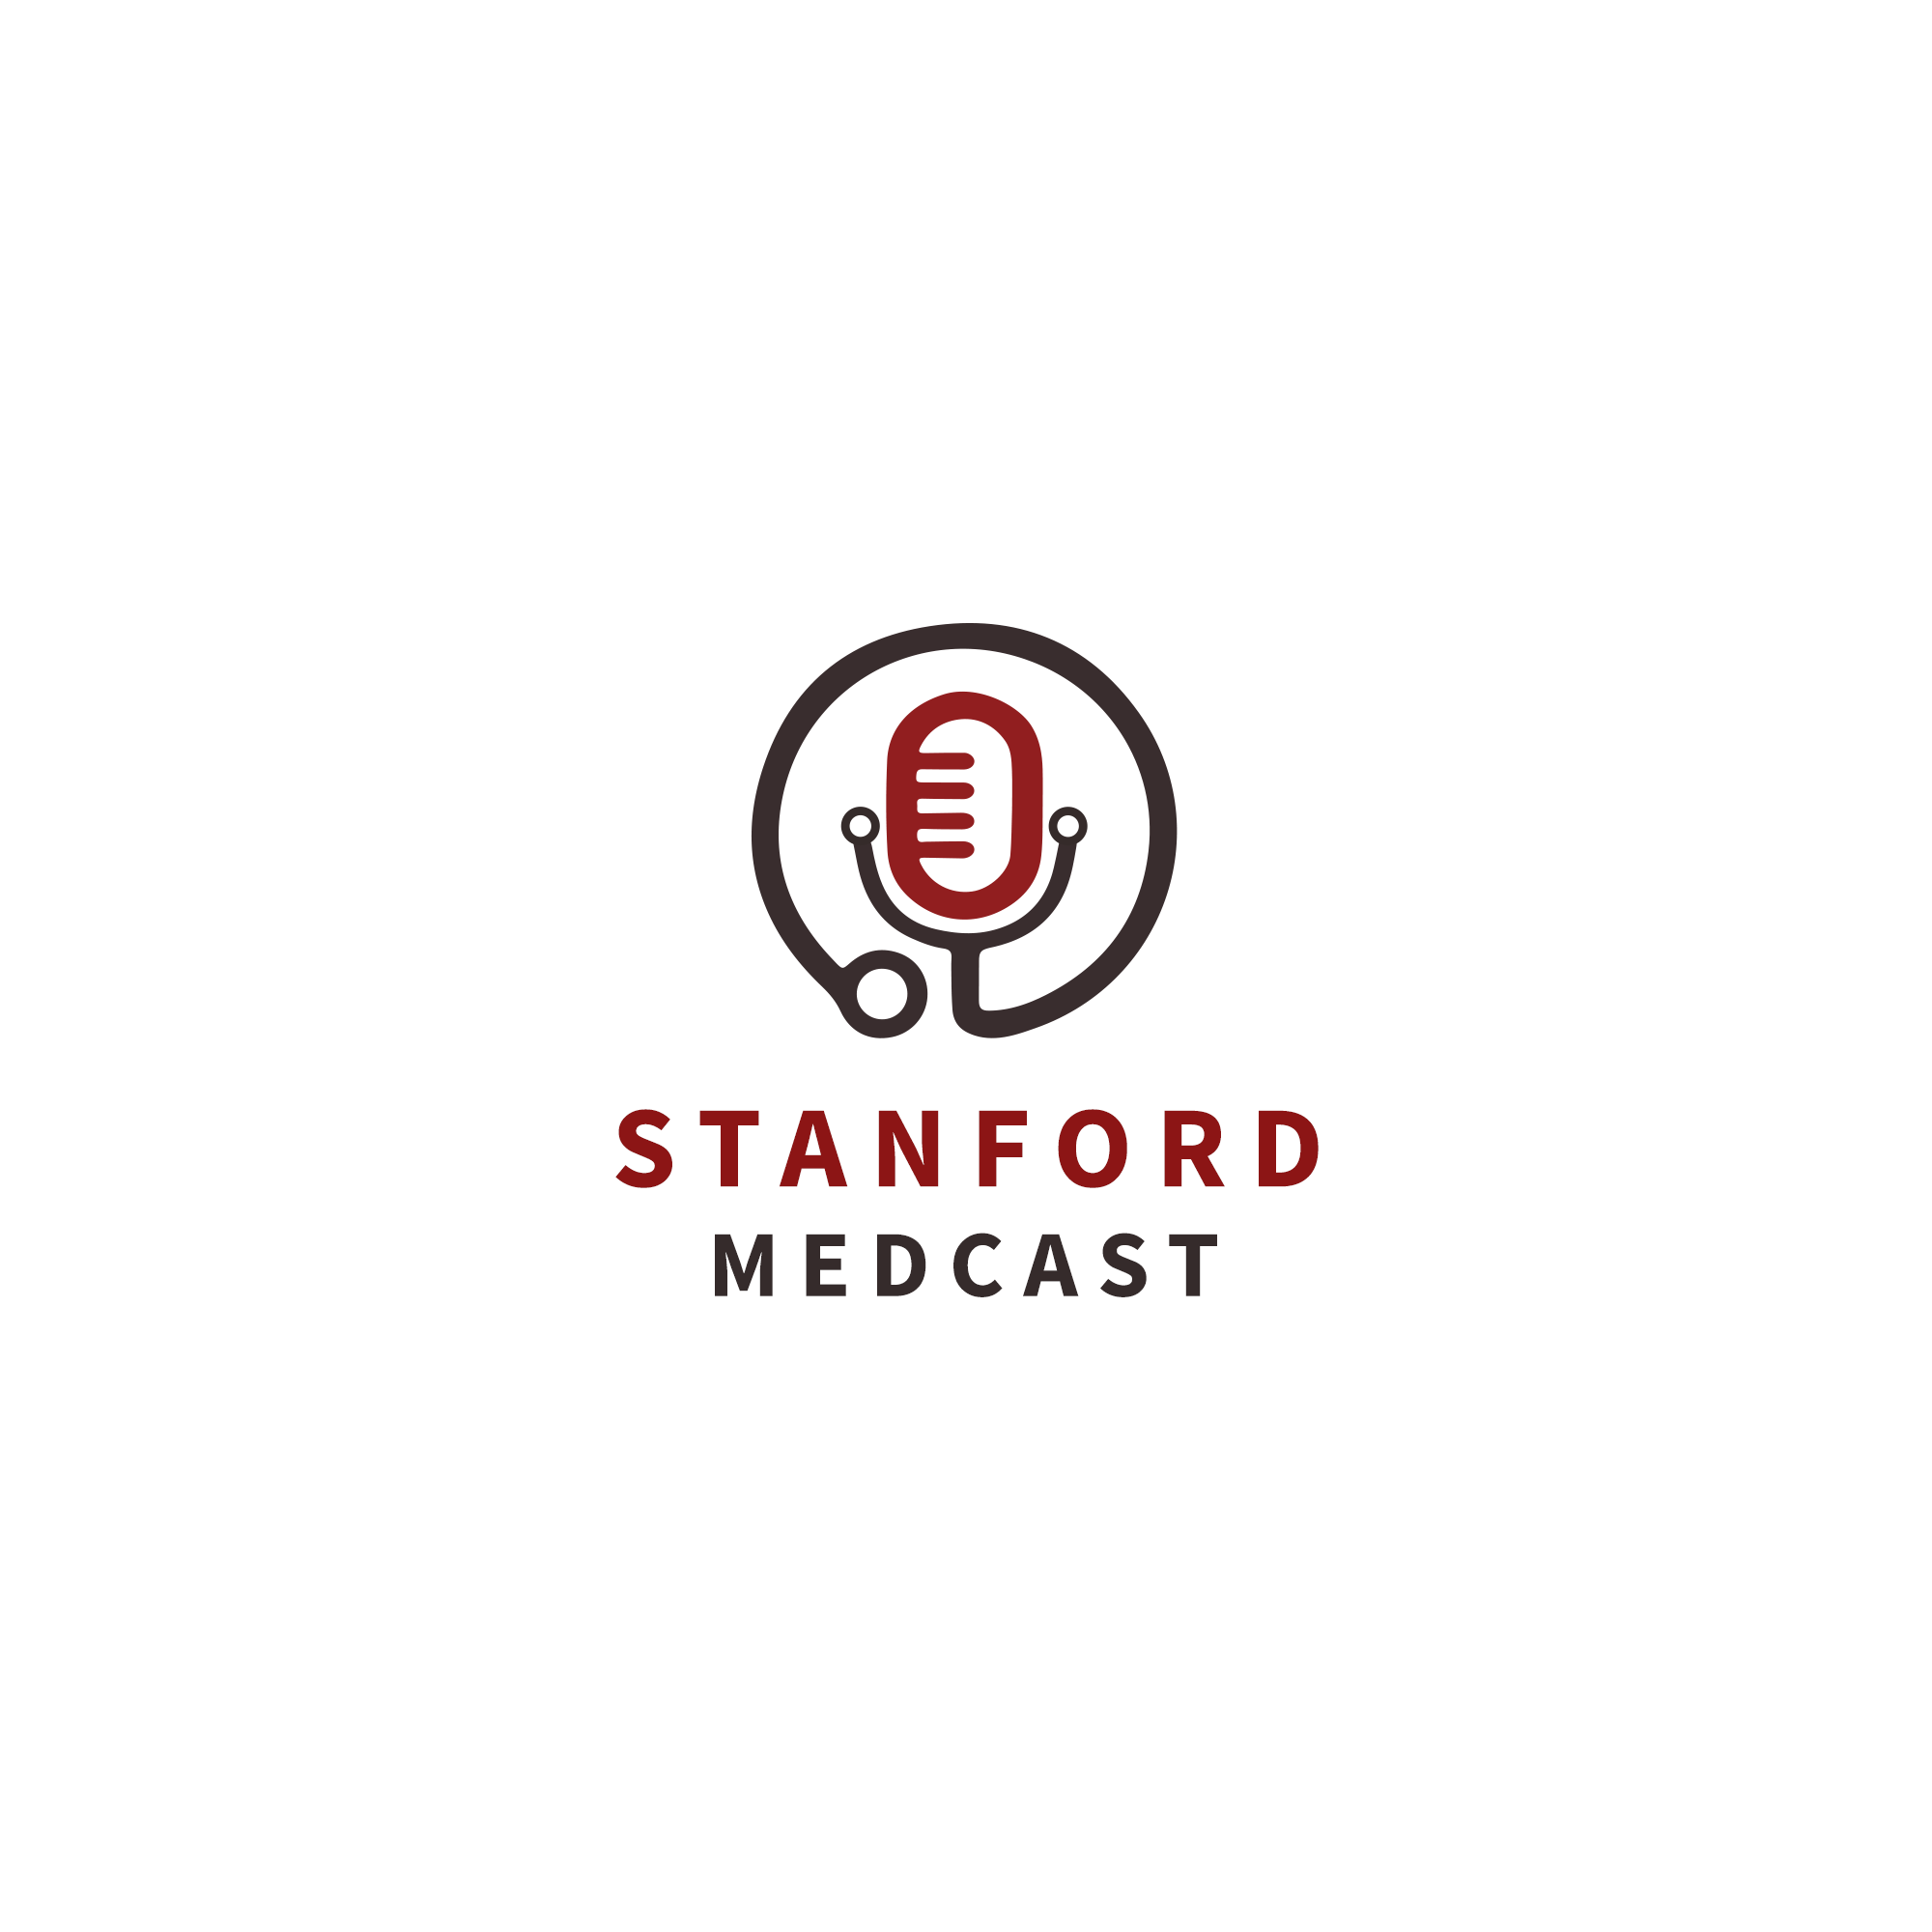 Stanford Medcast Episode 17: Hidden and Here Miniseries Part 2 Banner